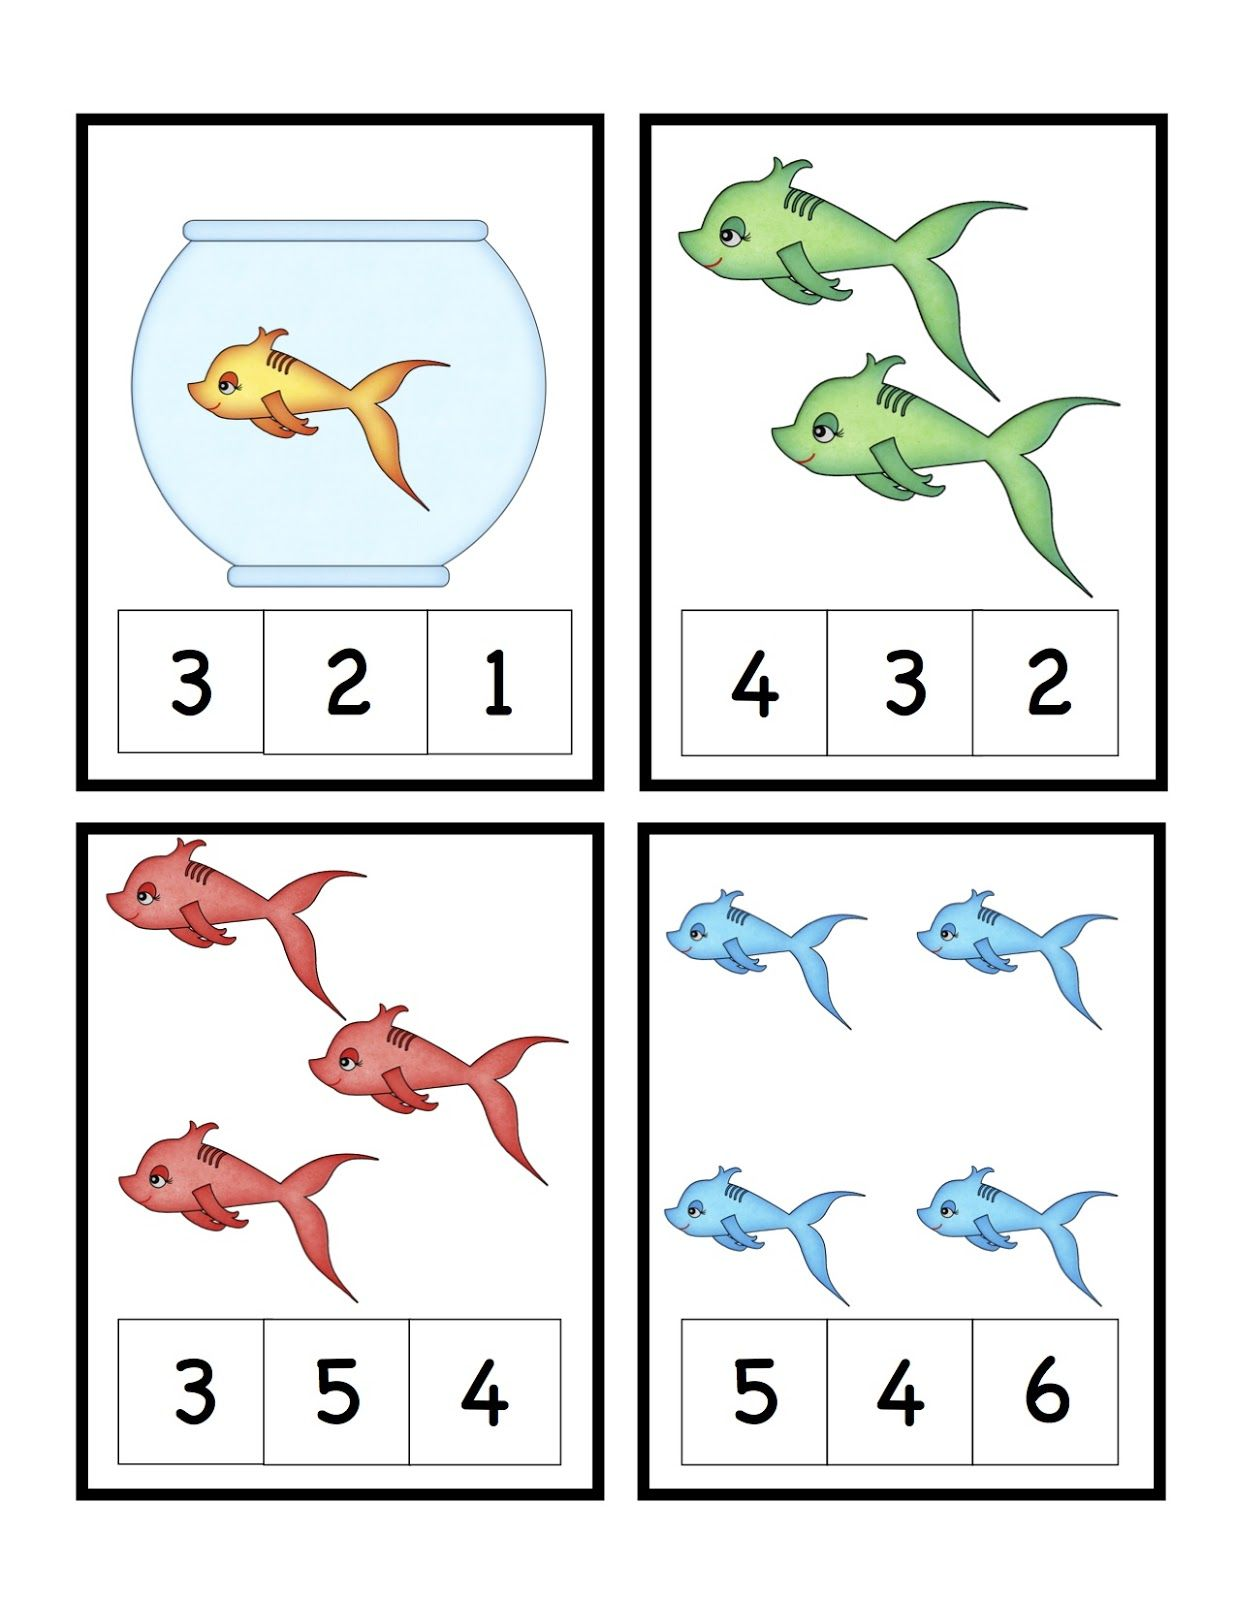 Unit 3 Worksheet 2 Dr Saul : Dr seuss theme free preschool printables cute fish